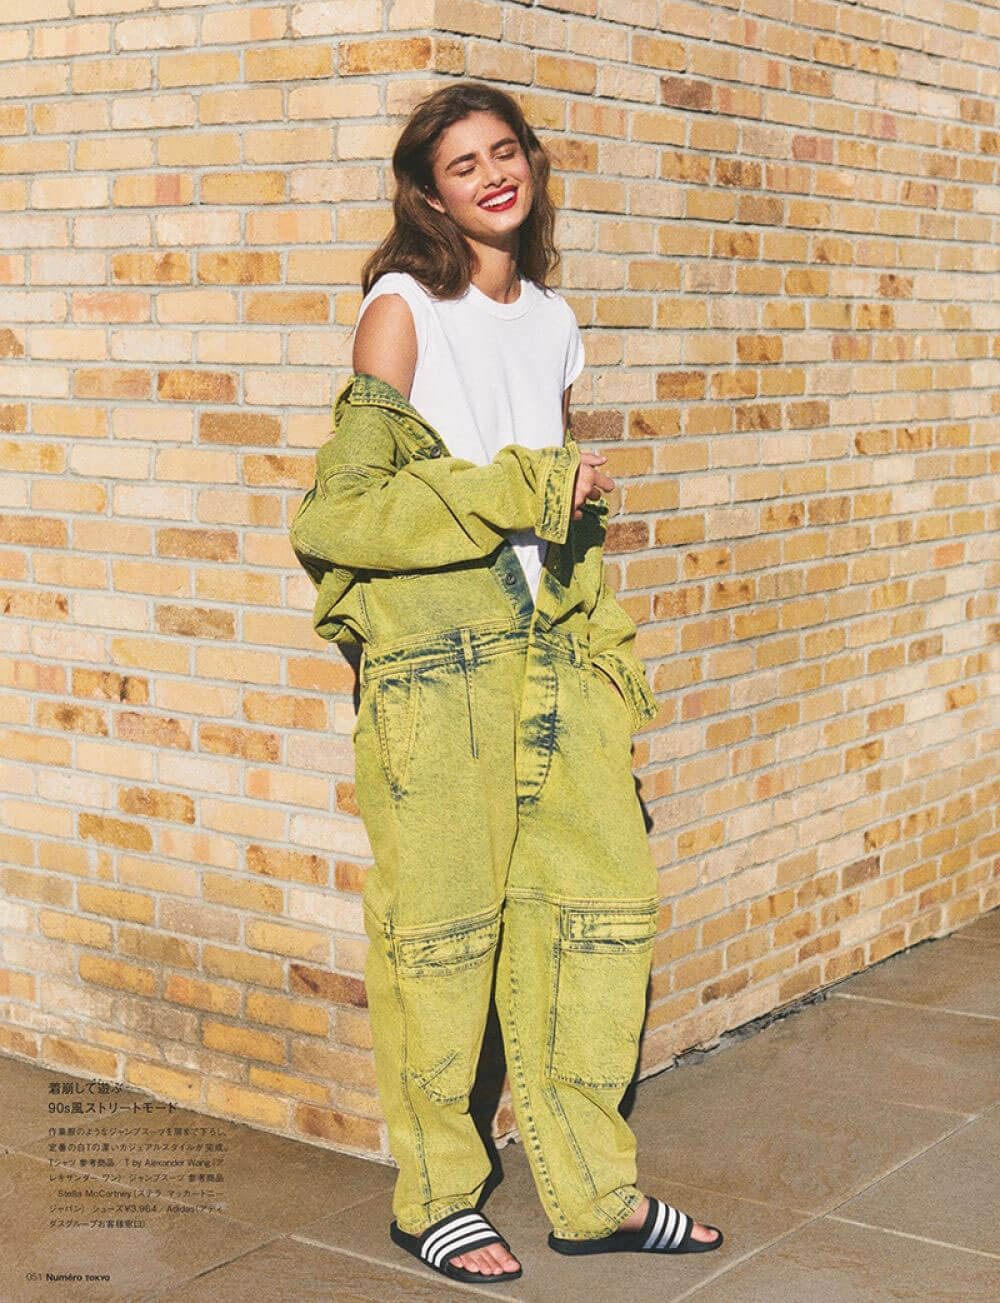 Taylor Hill in Numero Tokyo, July/August 2018 Issue 7